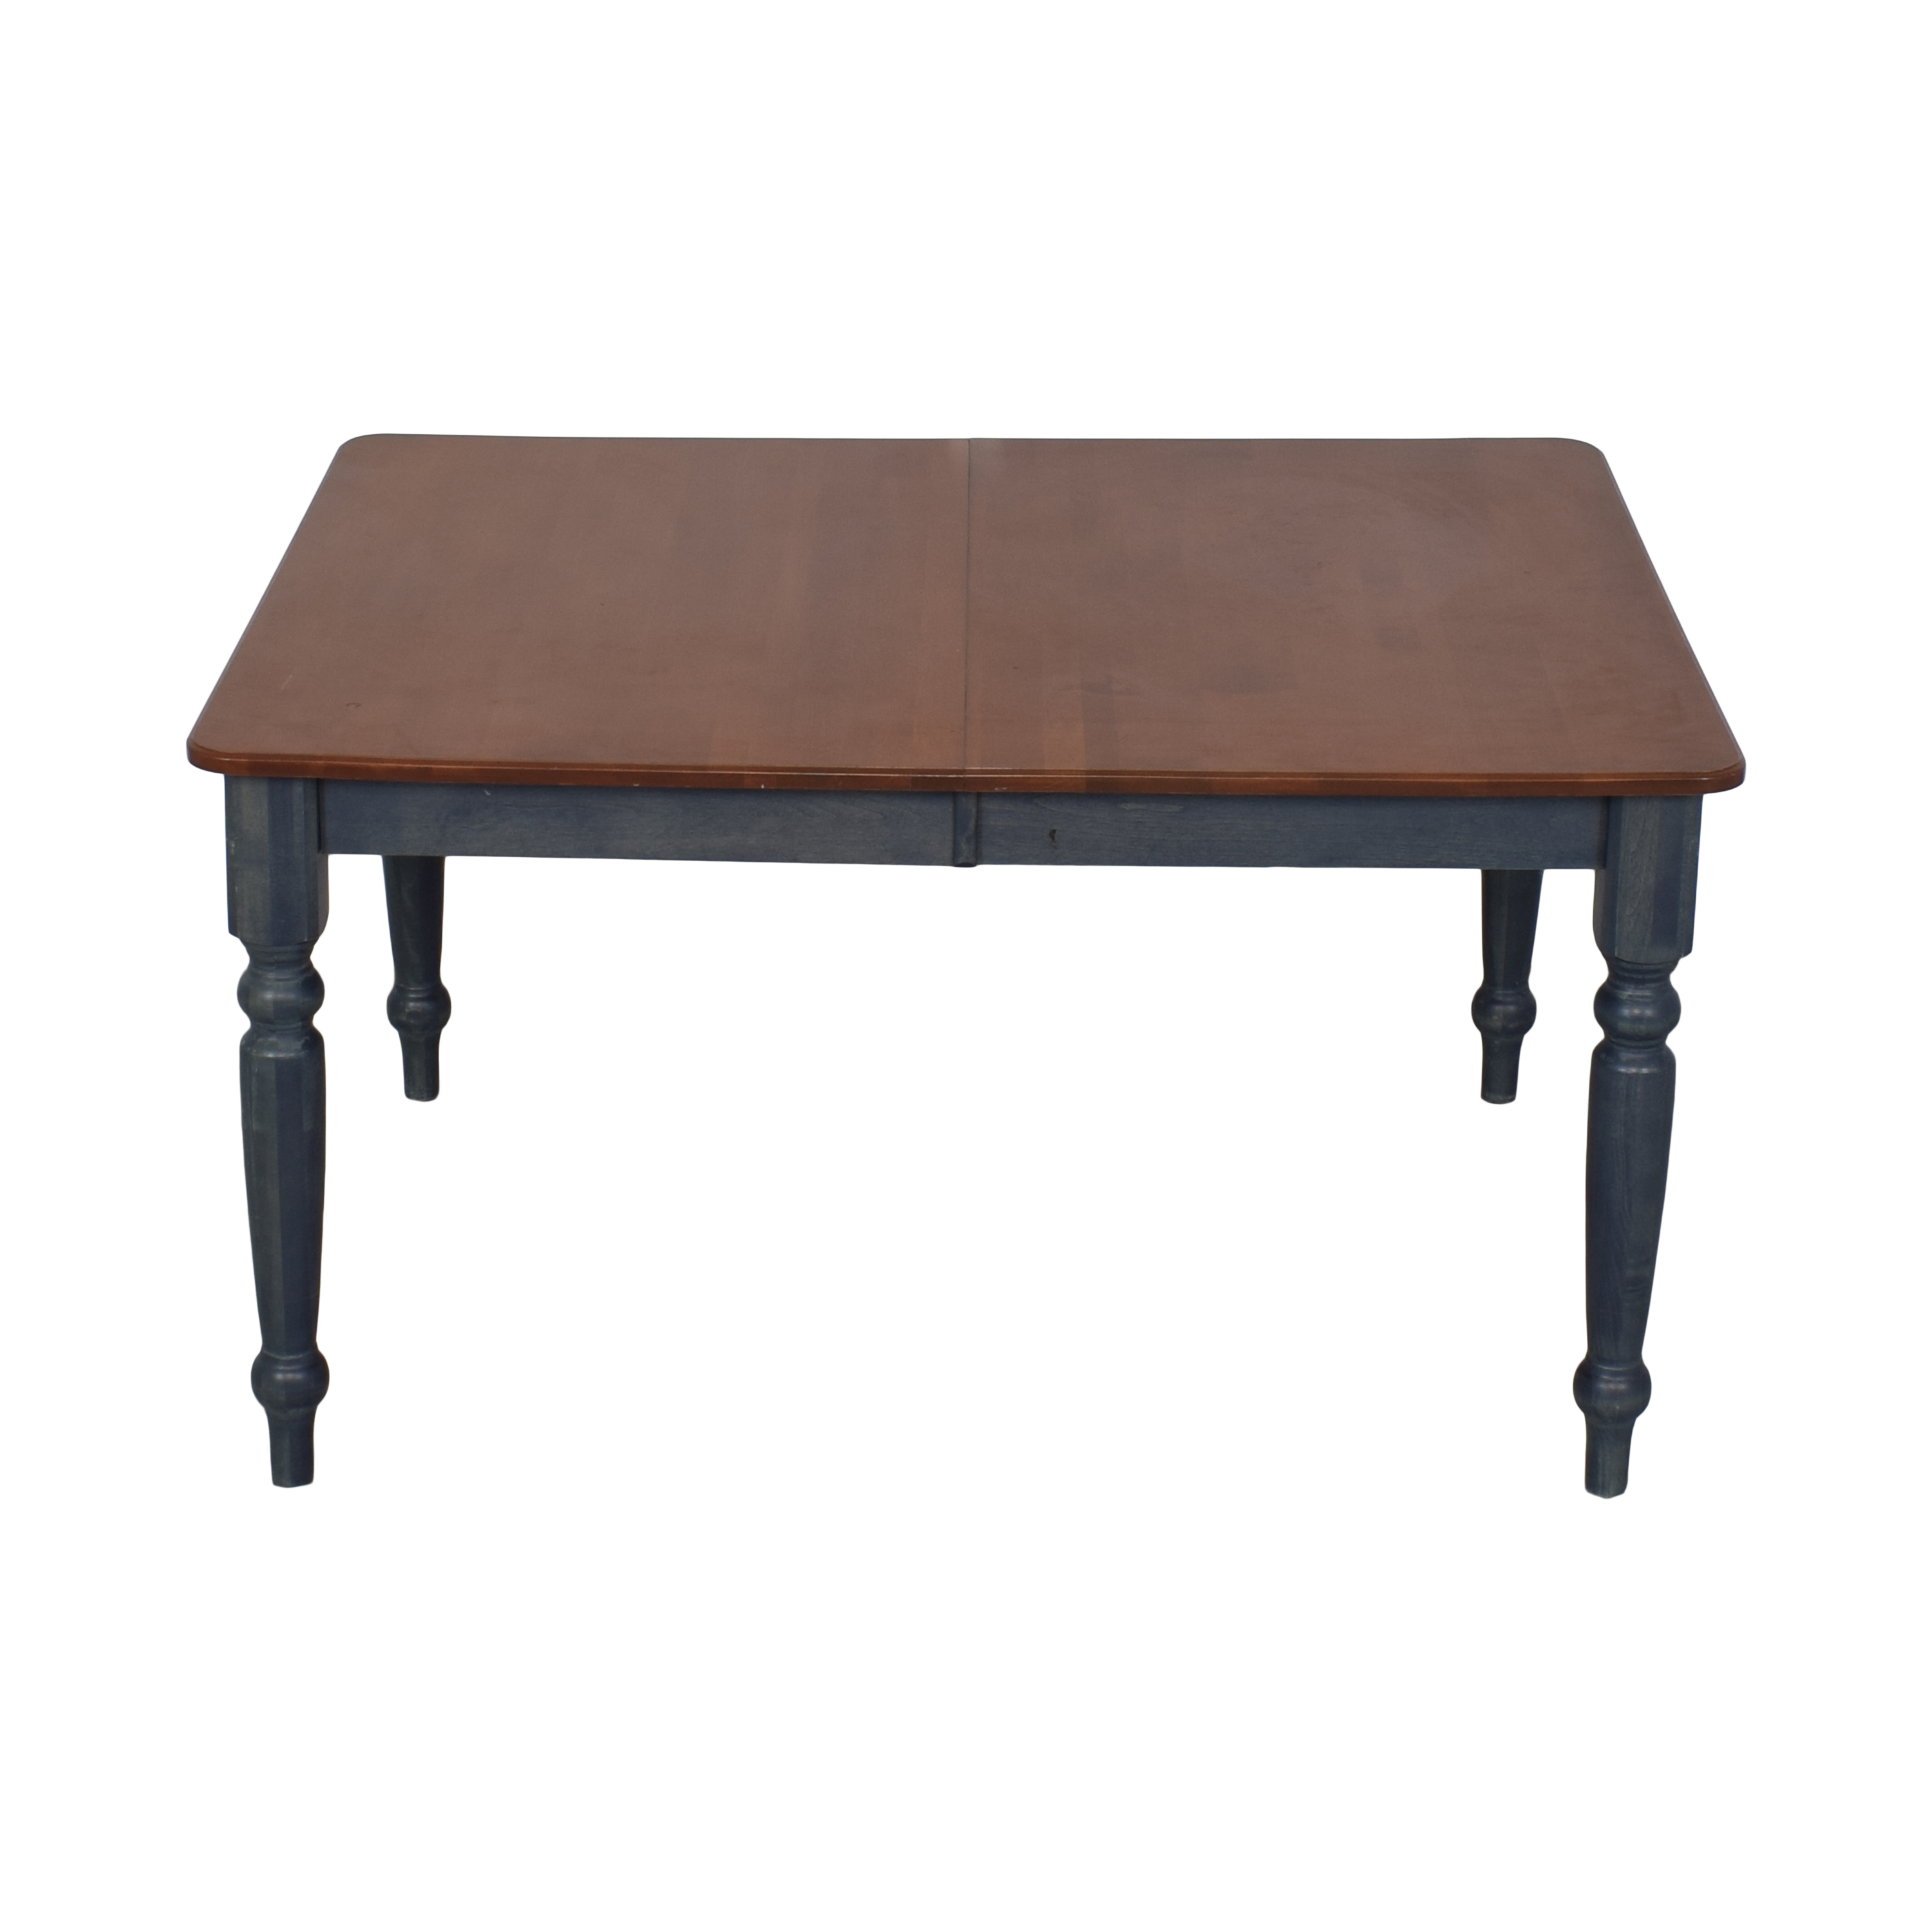 Canadel Dining Room Table sale